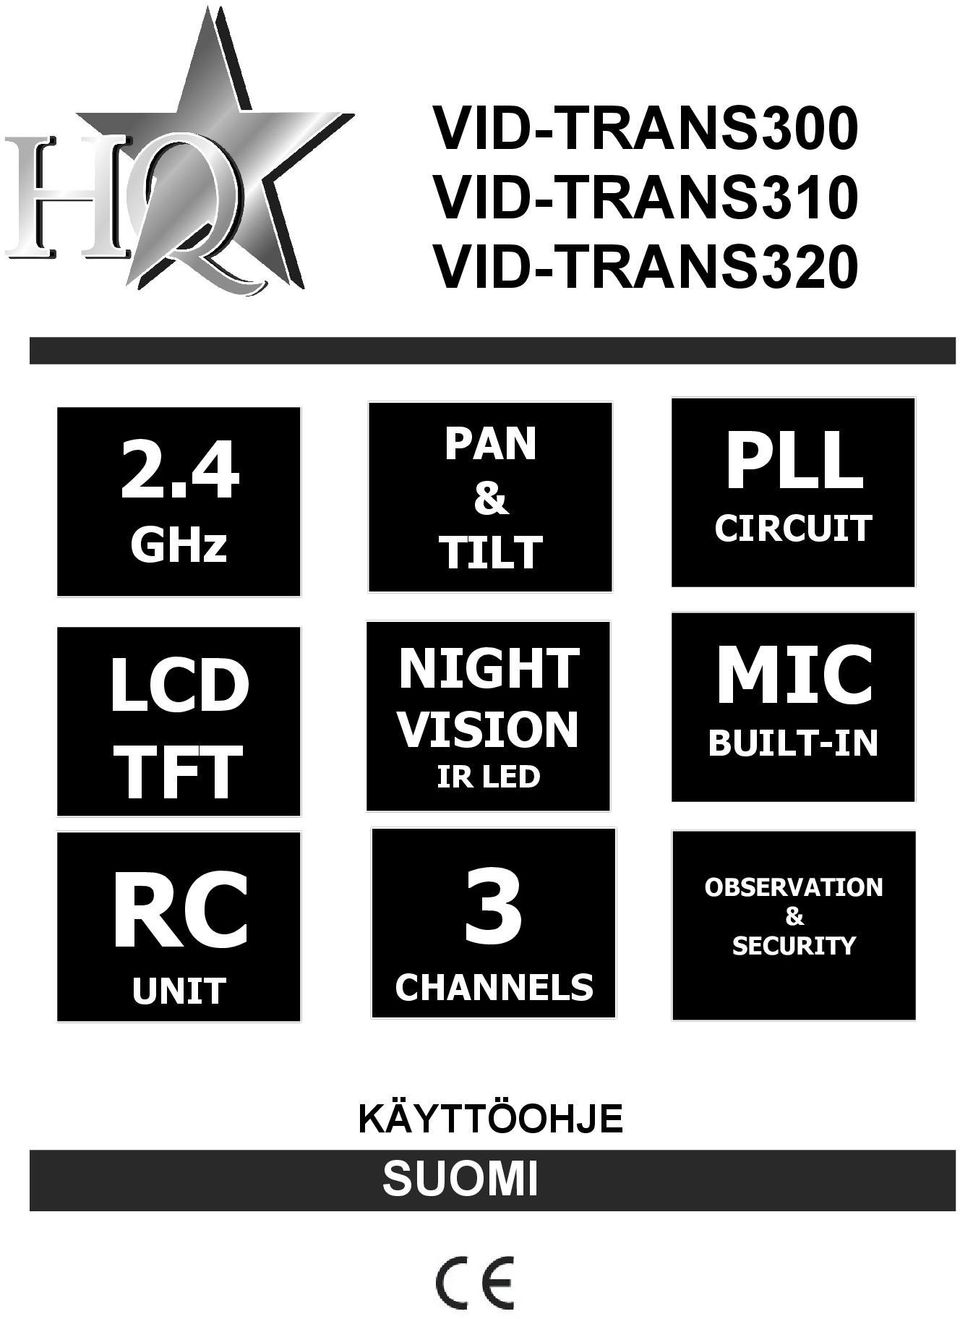 VISION IR LED 3 CHANNELS PLL CIRCUIT MIC